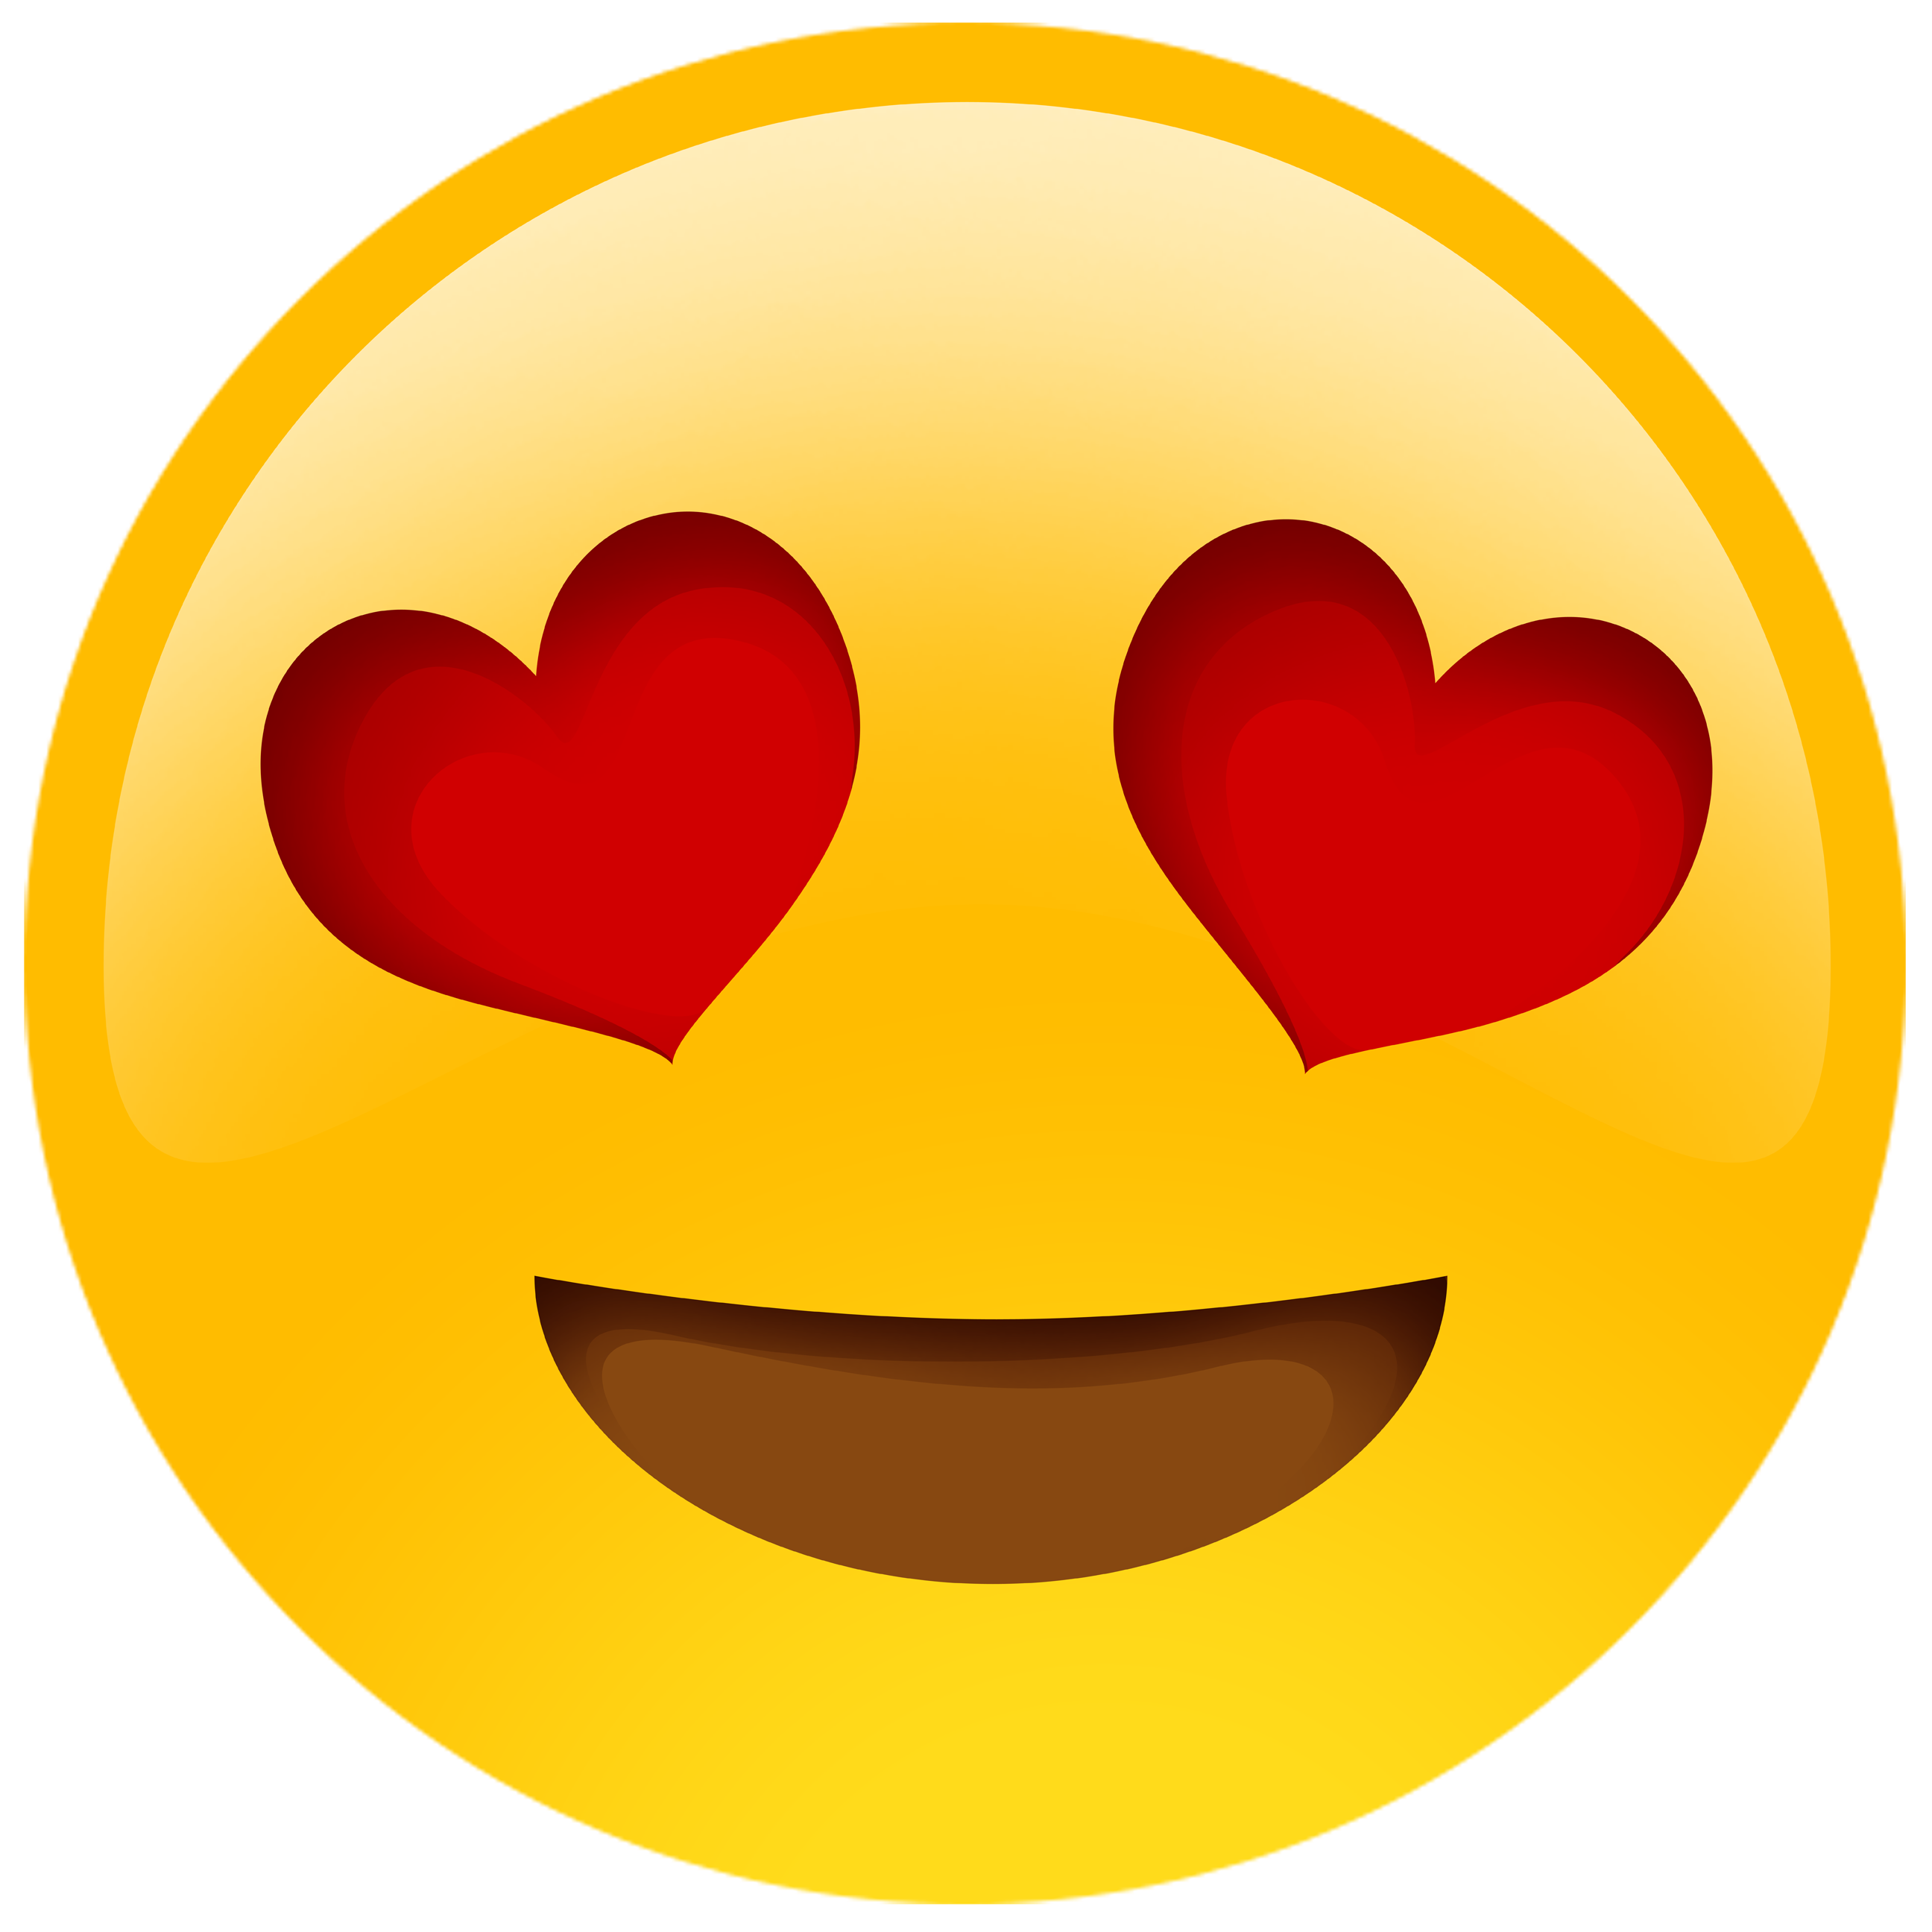 Emoji tongue out png clipart. Pack heart eyes